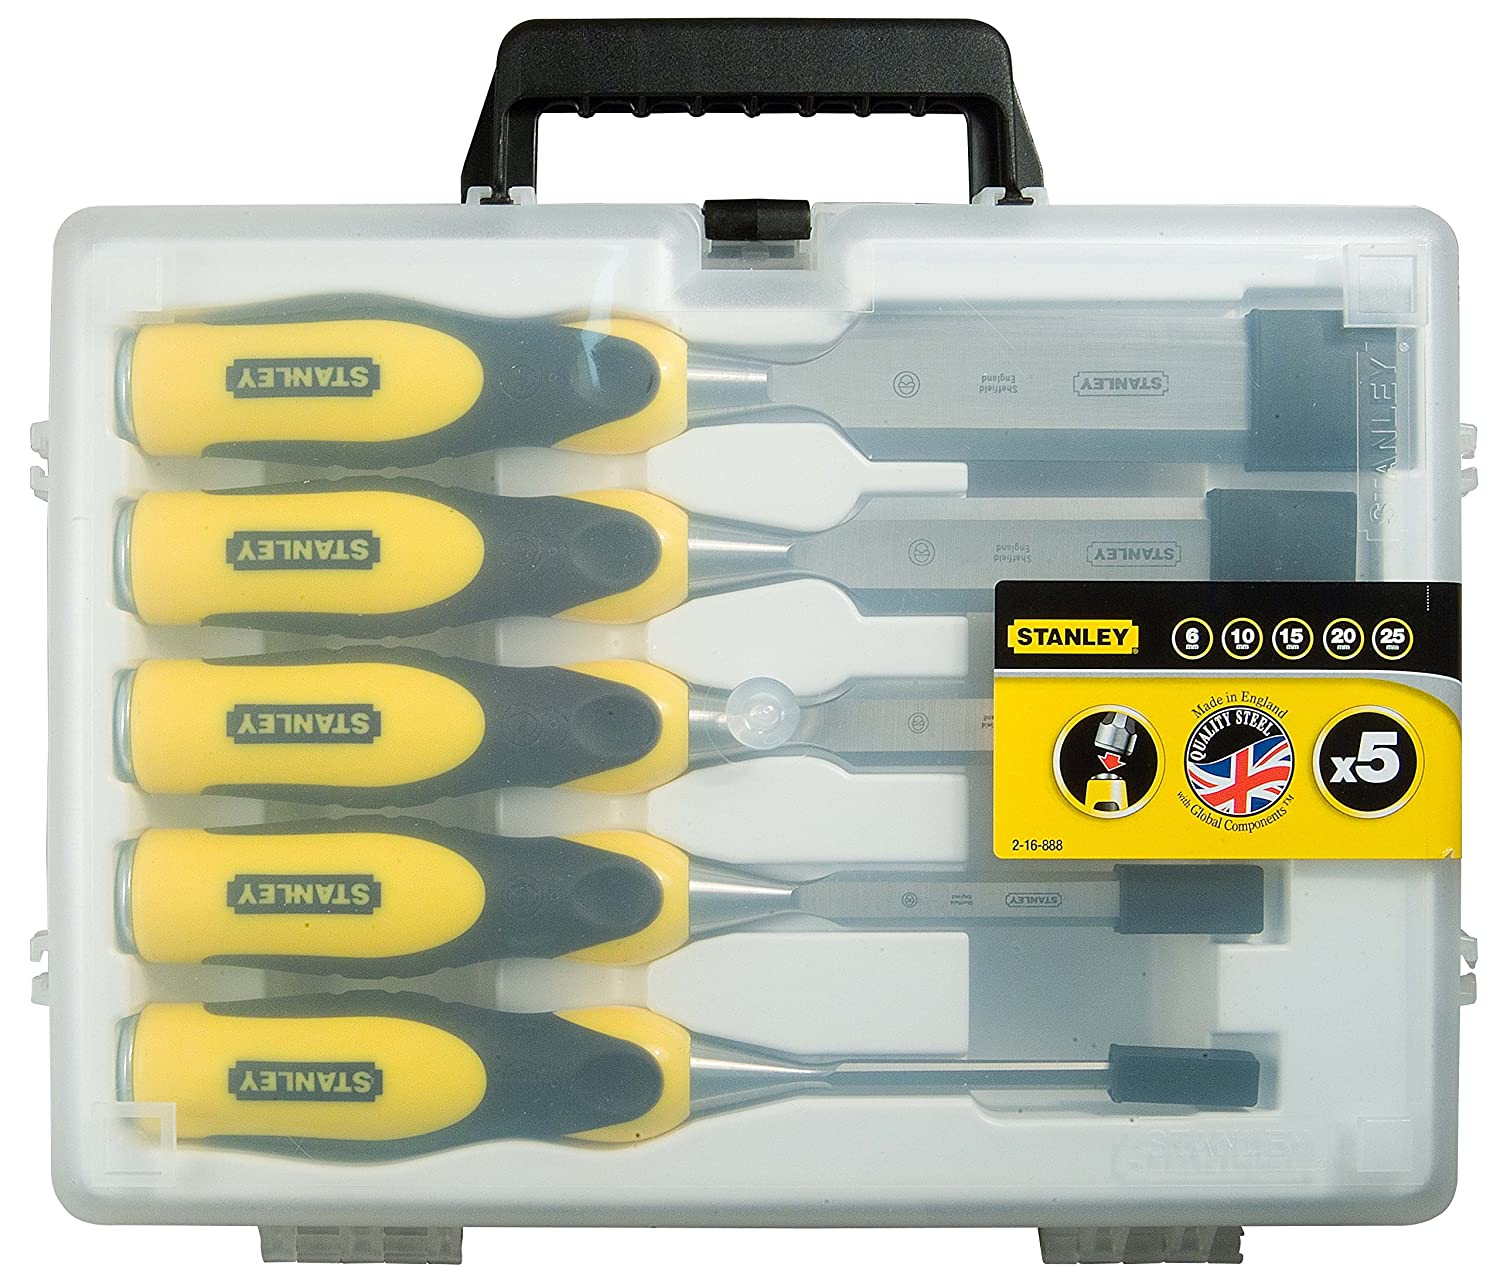 Set of 3 Pieces Stanley 2-16-887 Dynagrip Chisel-Set Yellow//Black 10-20 mm